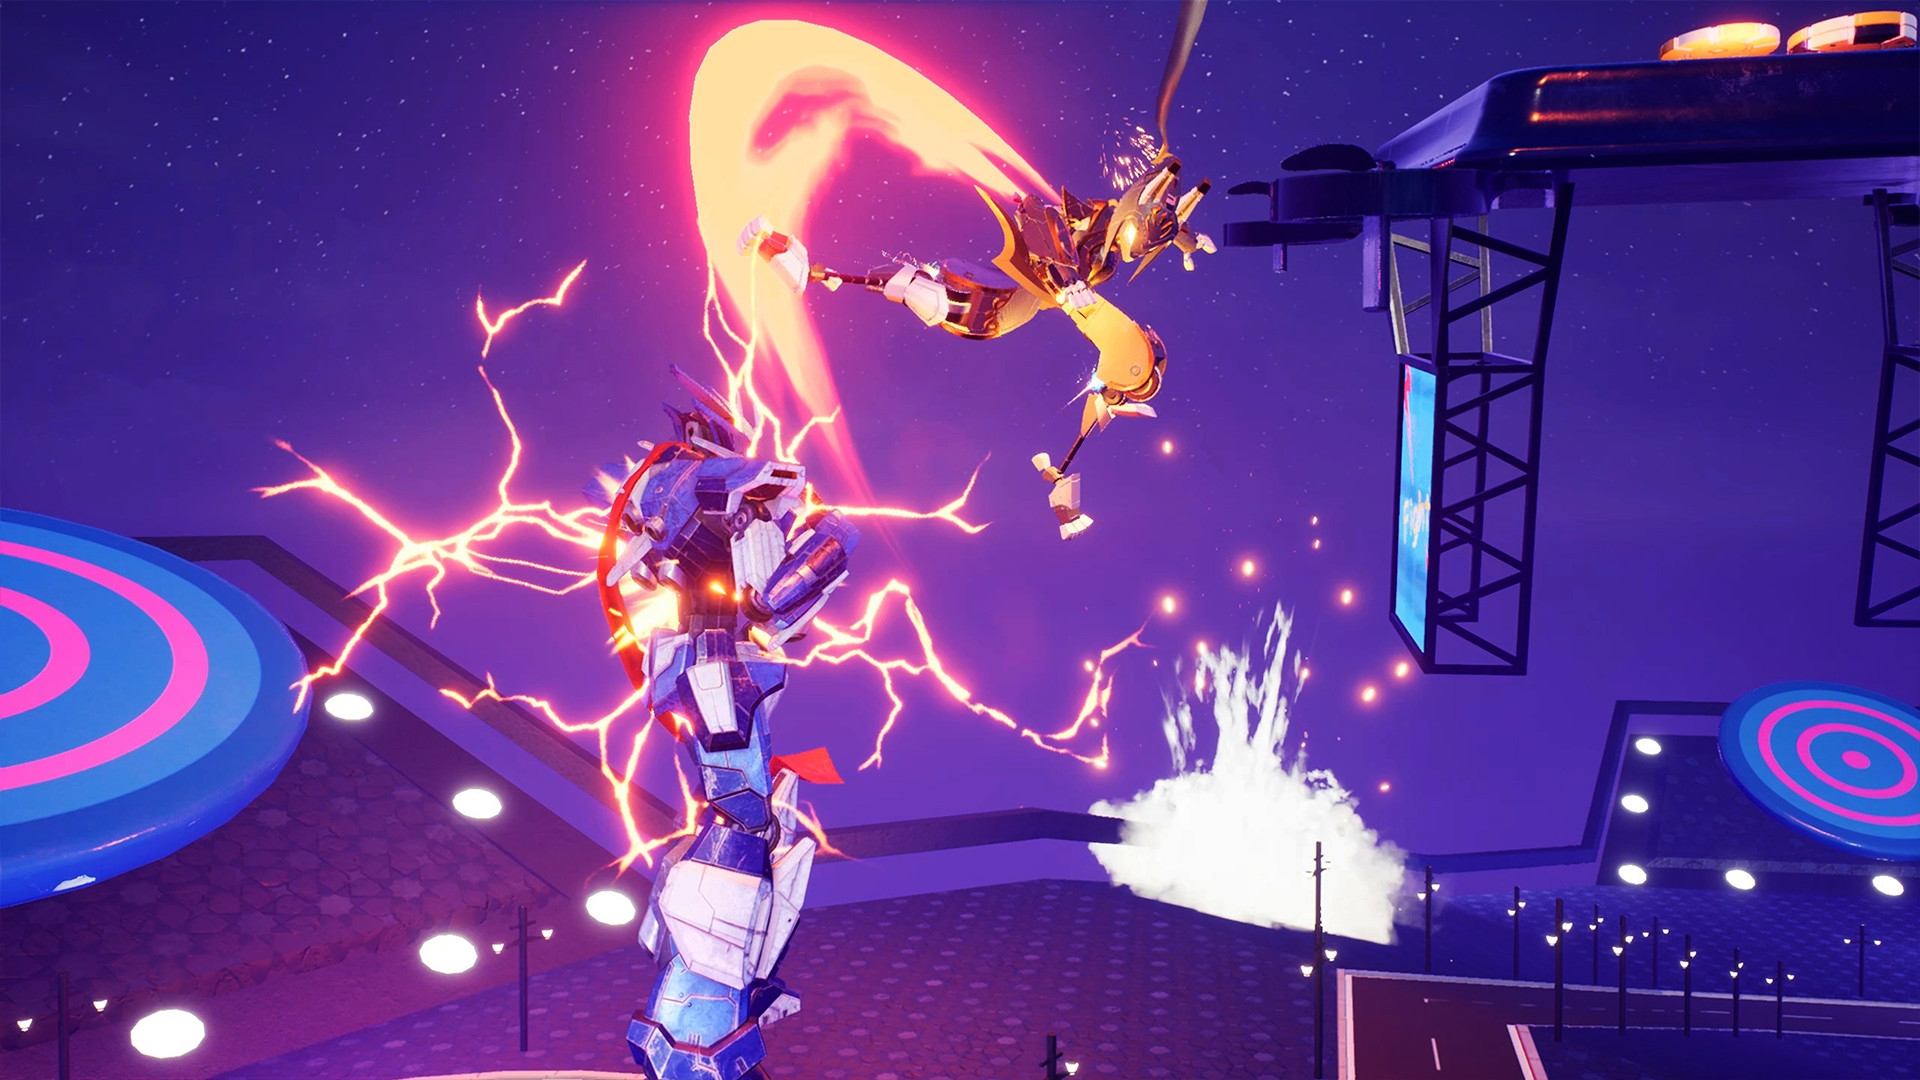 Giant Robot Brawler Override 2: Super Mech League Launches On December 22